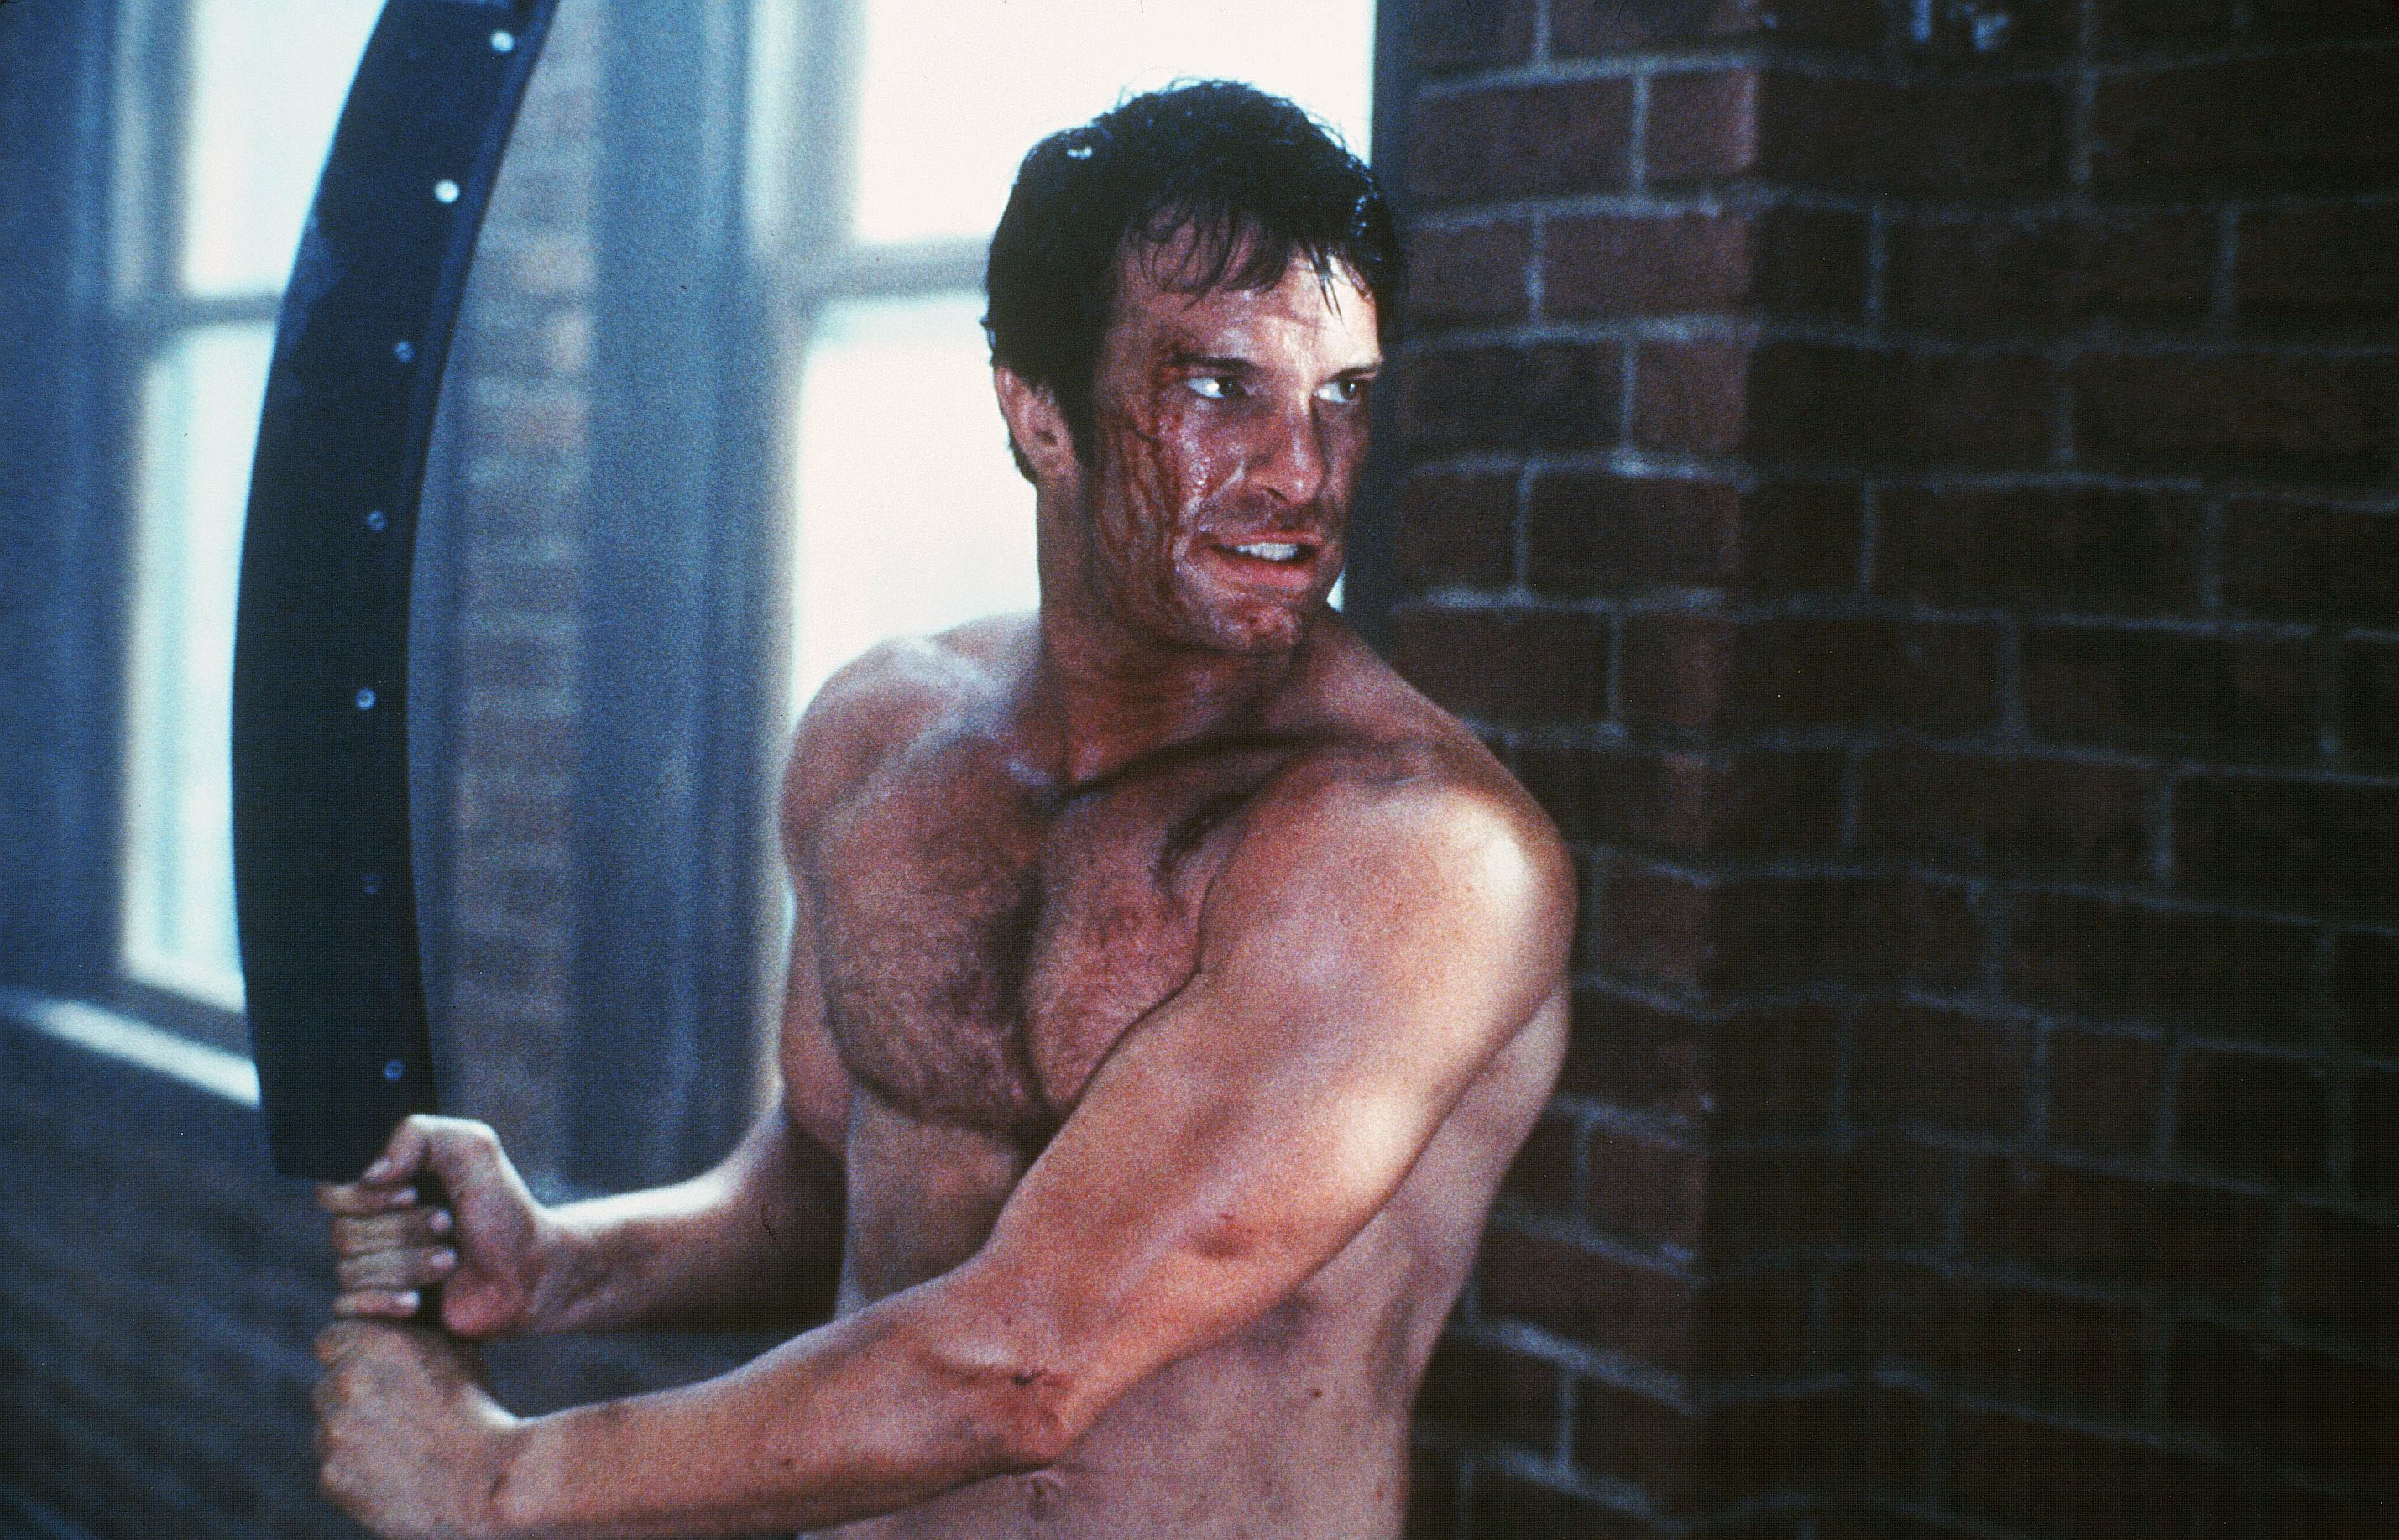 Editorial use only. No book cover usage.Mandatory Credit: Photo by Marvel/Columbia Tristar/Kobal/Shutterstock (5881591j) Thomas Jane The Punisher - 2004 Director: Jonathan Hensleigh Marvel / Columbia Tristar USA Scene Still Thriller